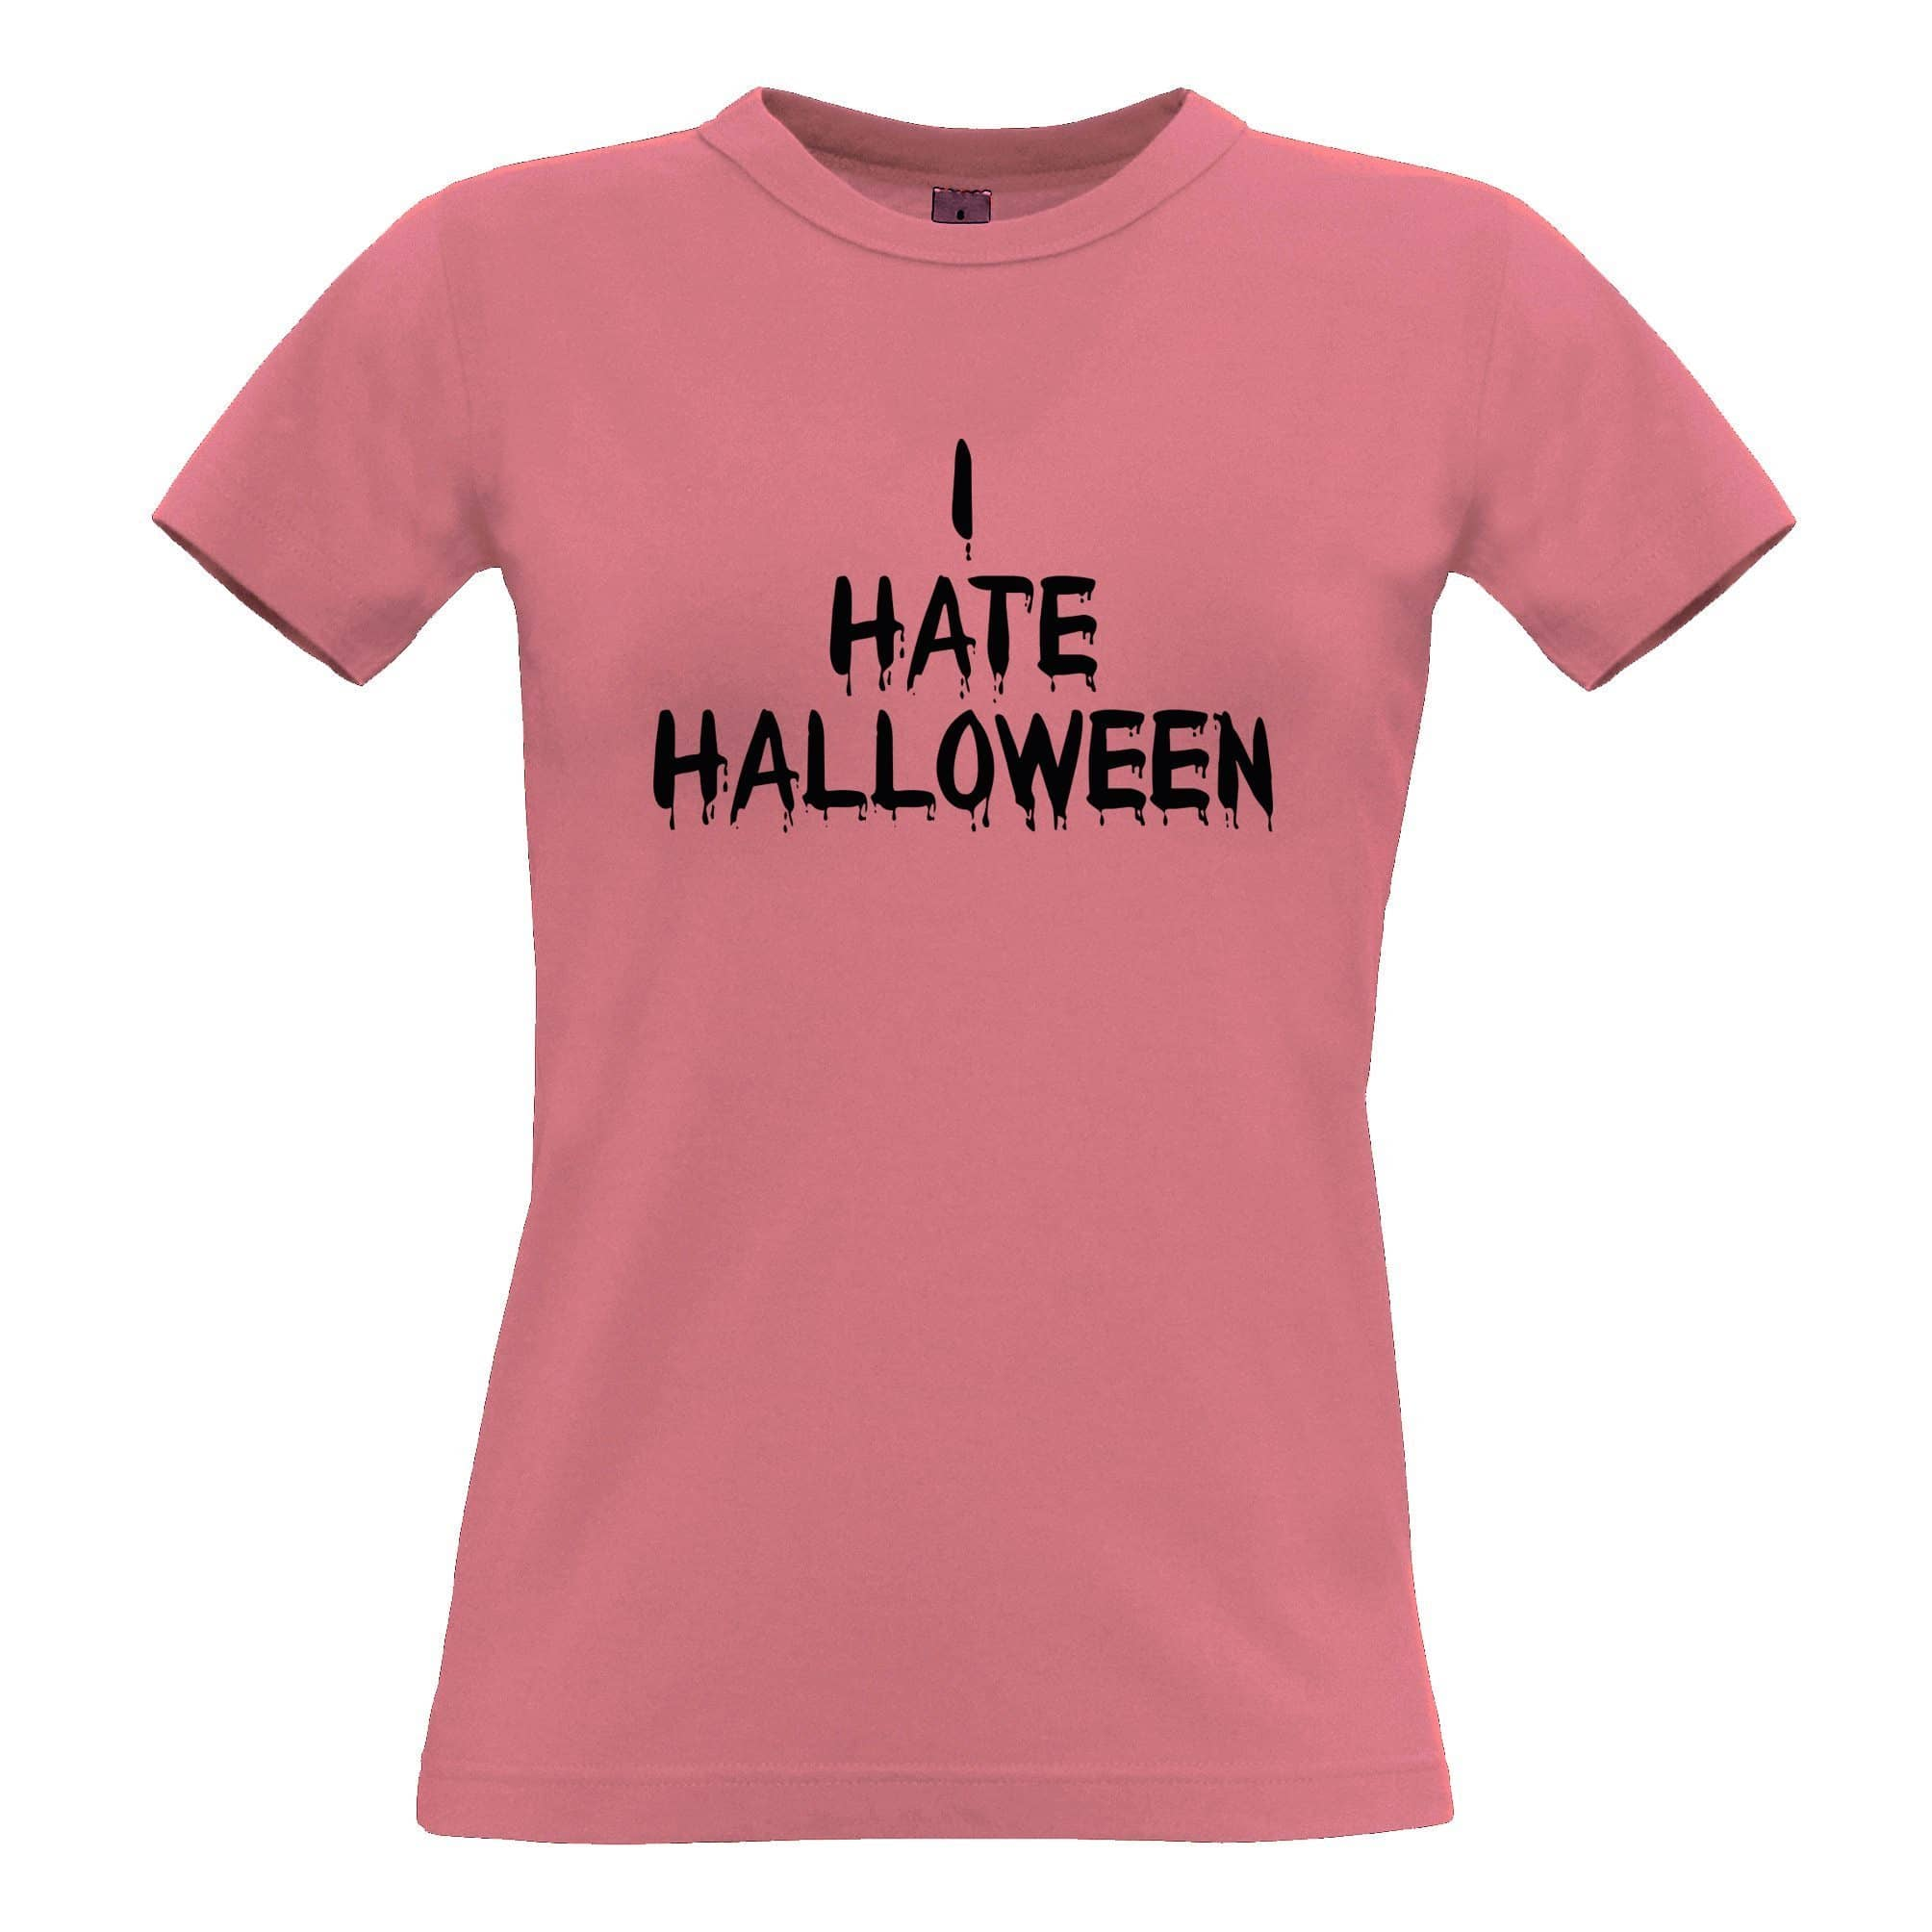 Anti-Holiday Womens T Shirt I Hate Halloween Slogan